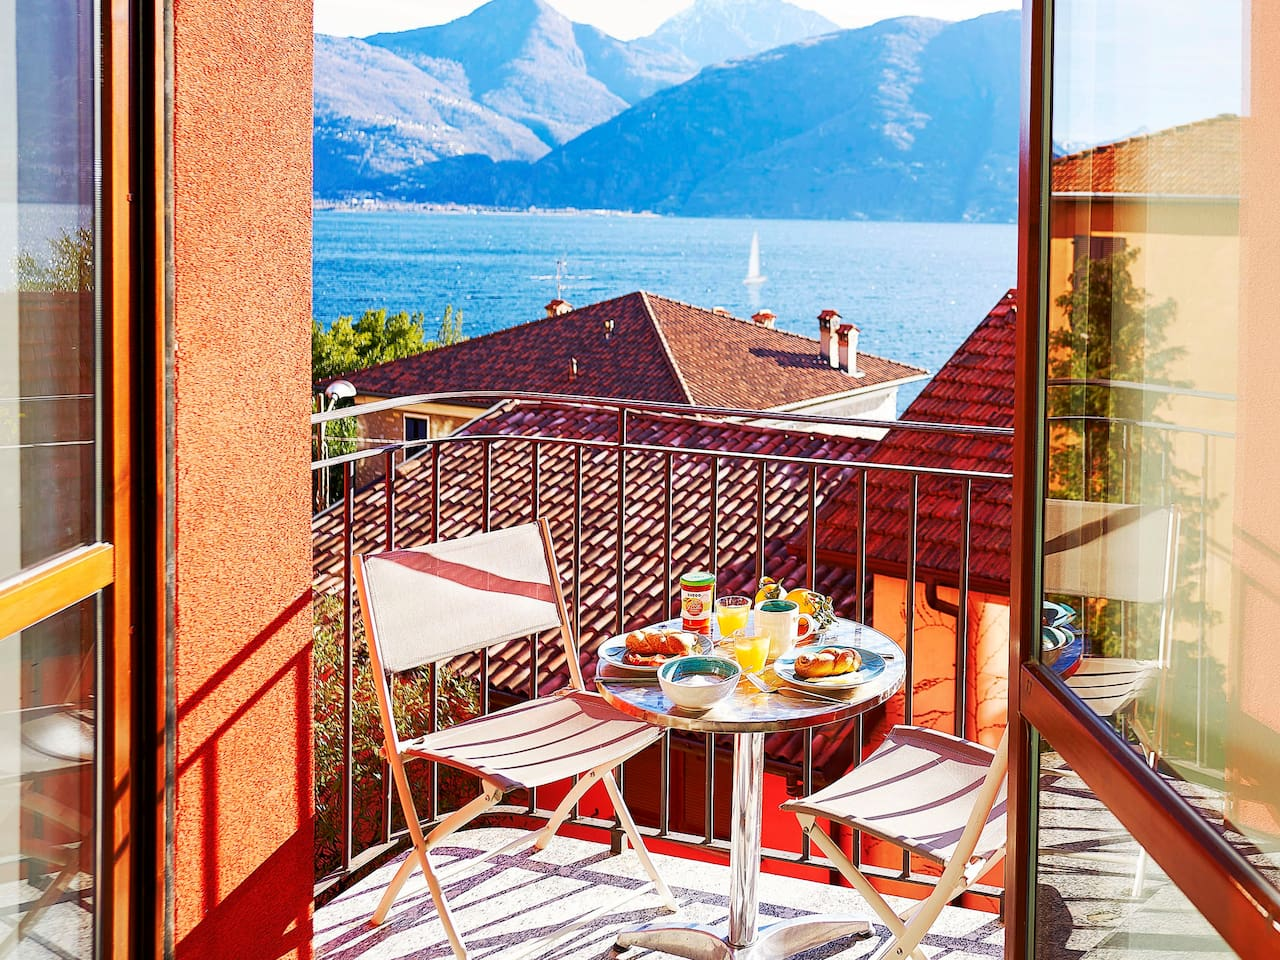 Breakfast on the balcony with a full lake view.